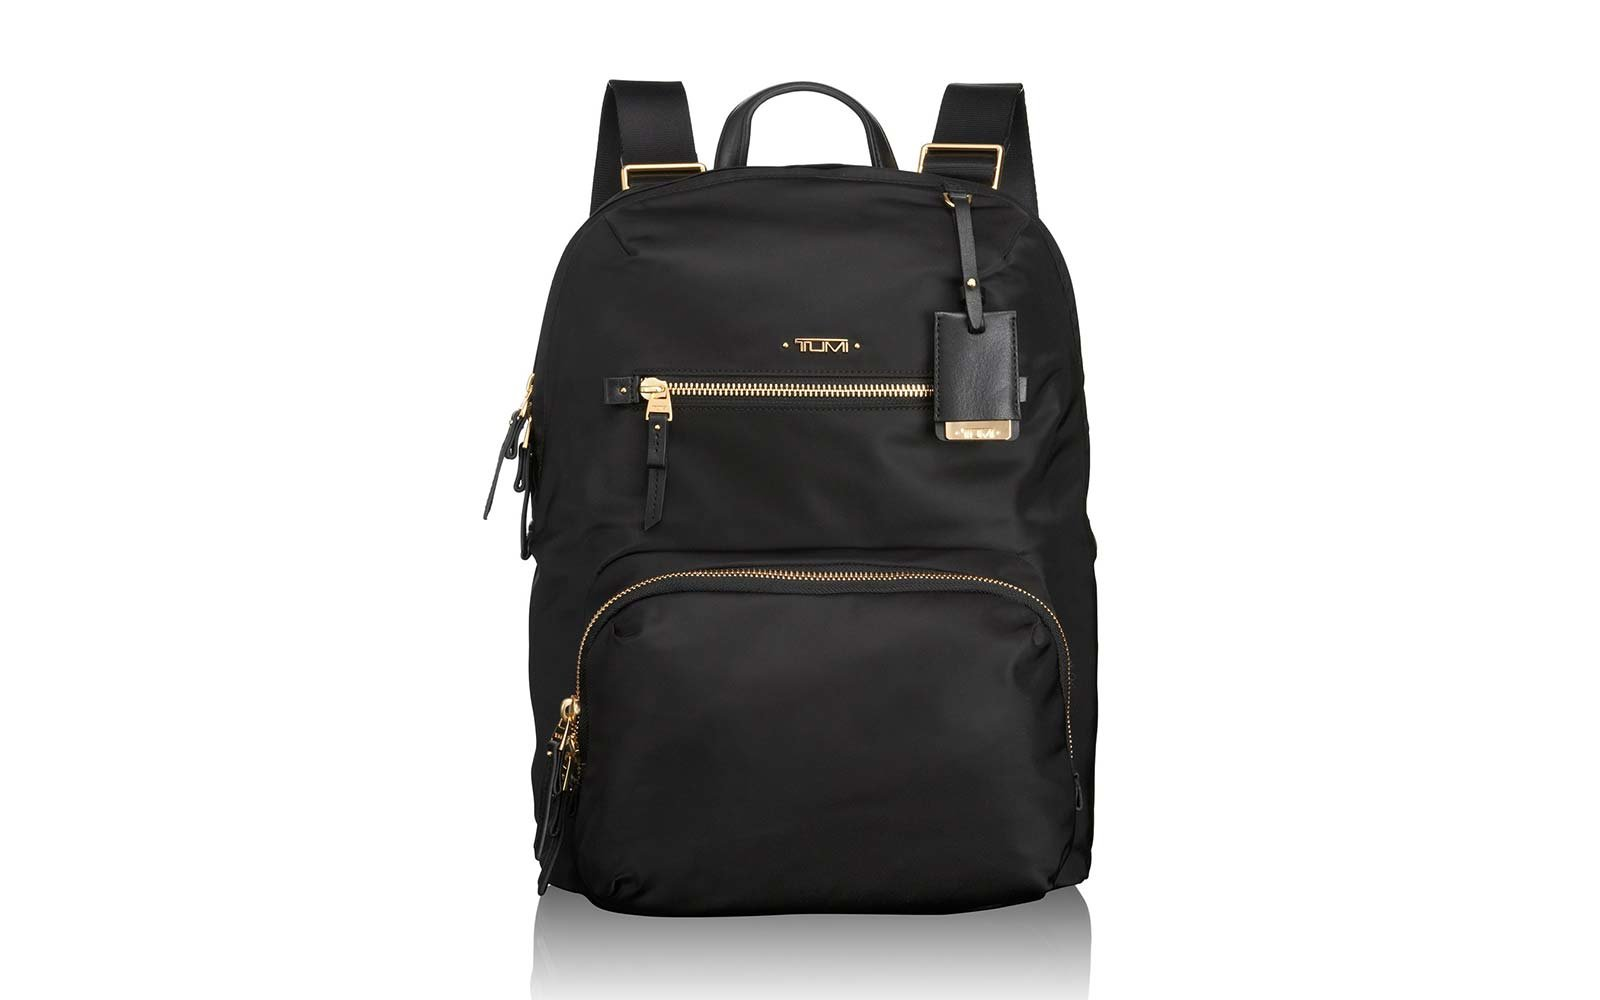 Stylish Laptop Bags For Business Travel Travel Leisure